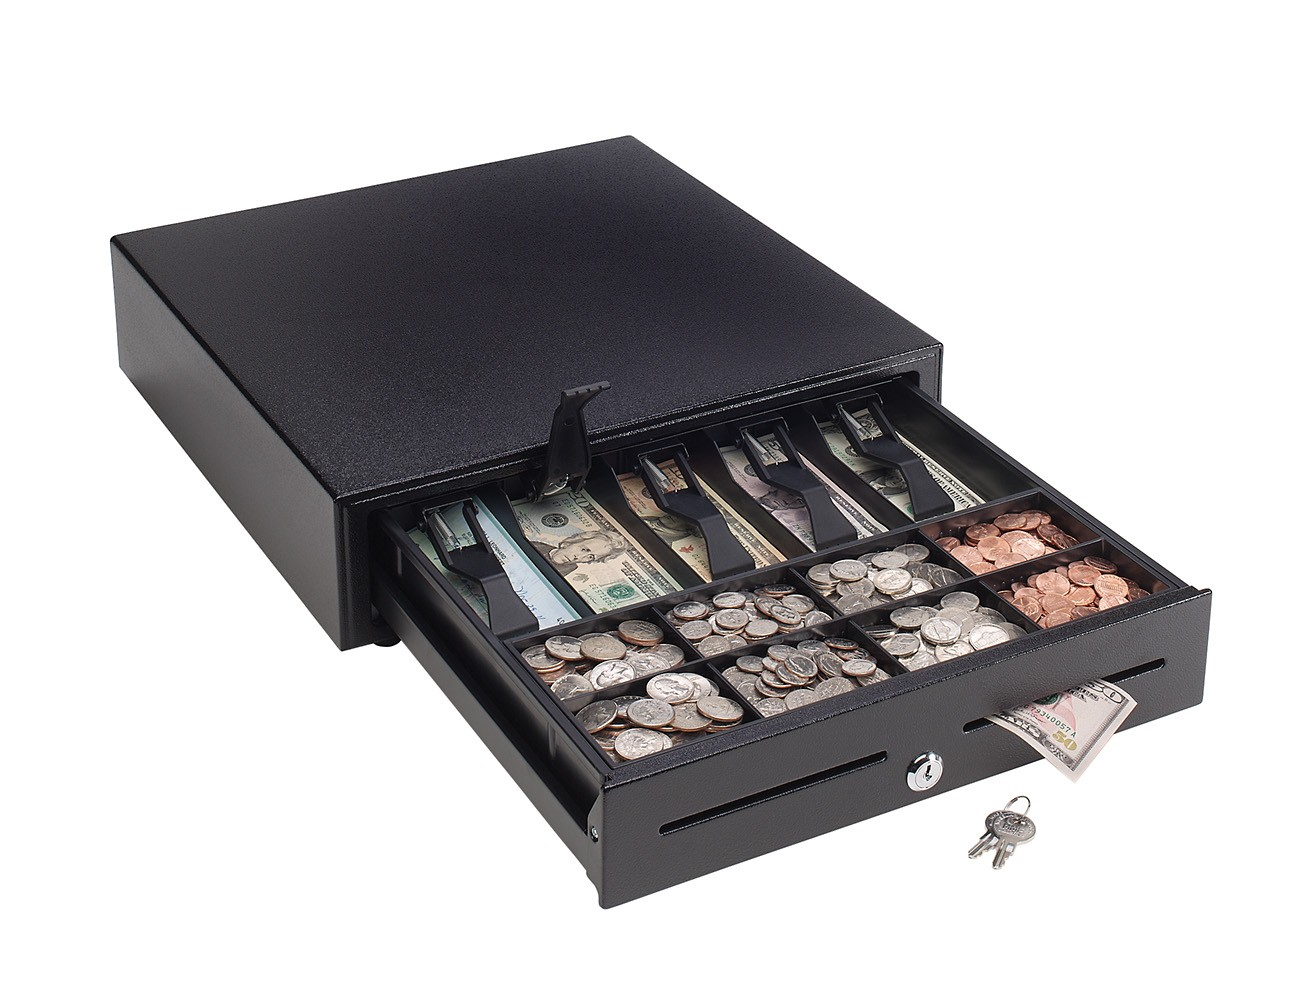 unypos product img pos deluxe marketing bill drawer coin checkusfirst cash standard